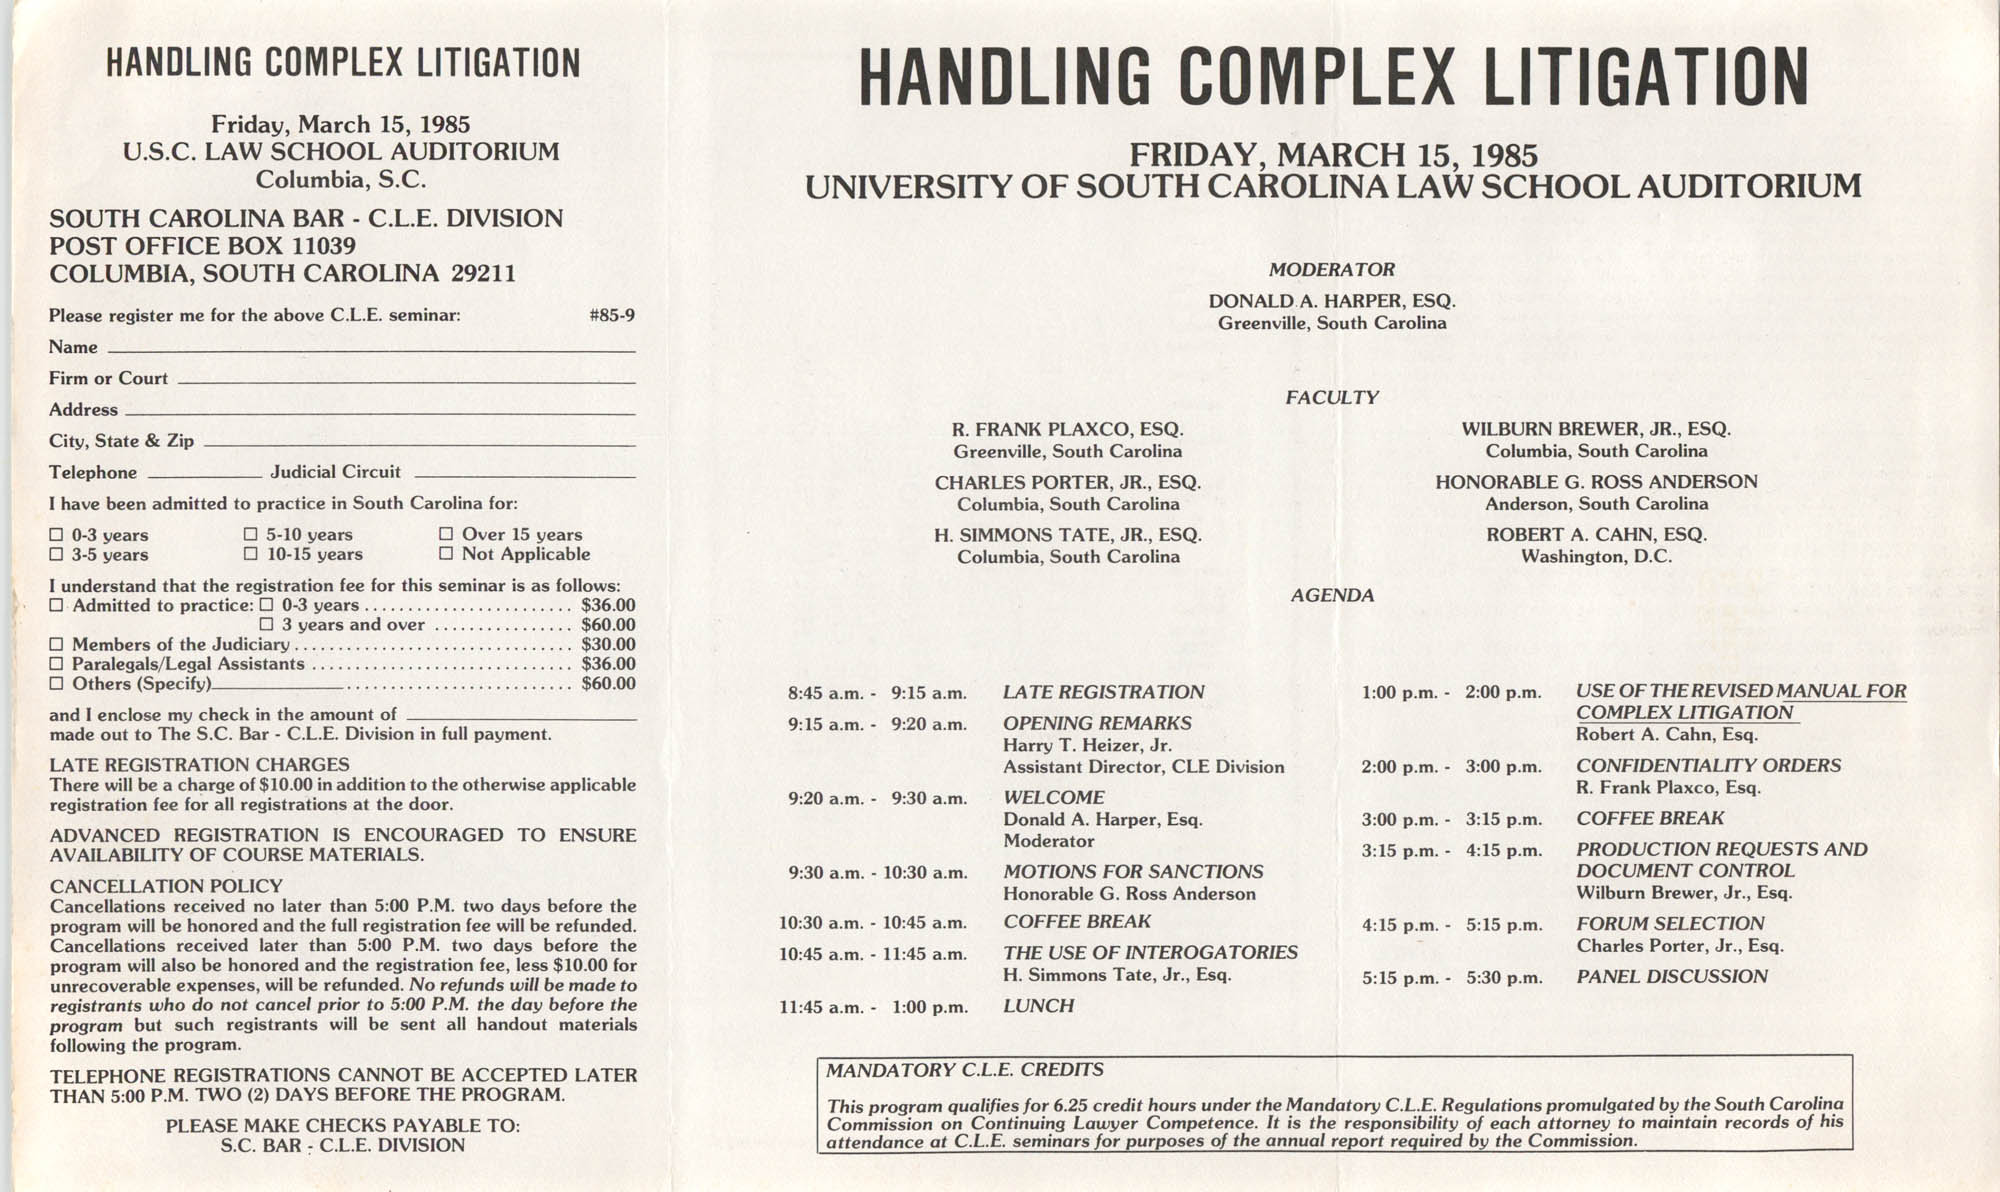 Handling Complex Litigation, Continuing Legal Education Seminar Pamphlet, March 15, 1985